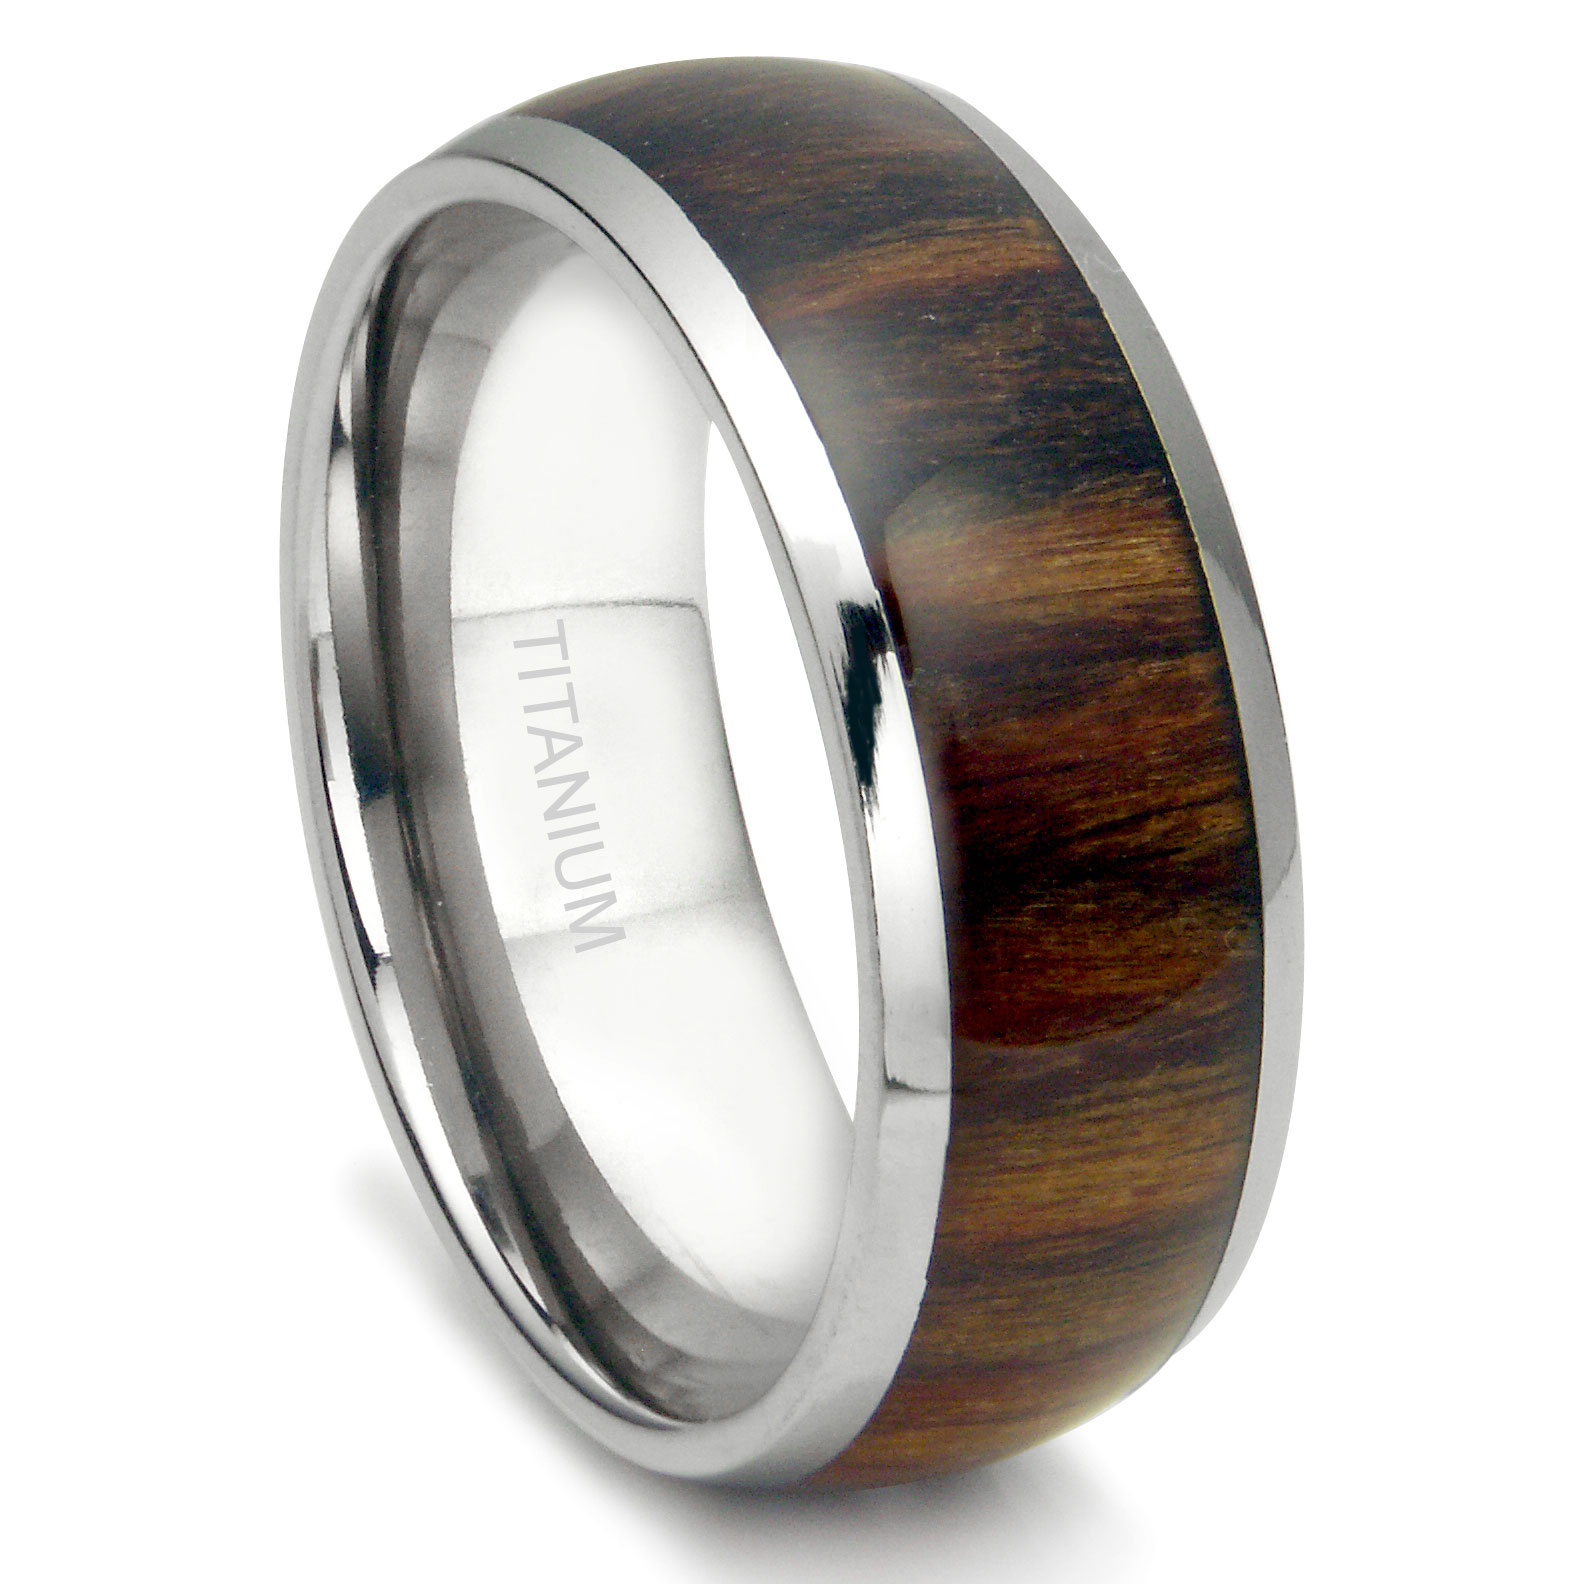 Titanium 8MM Domed Santos Rosewood Inlay Wedding Band Ring P mens titanium wedding band Home Men s Titanium Wedding Rings Loading zoom